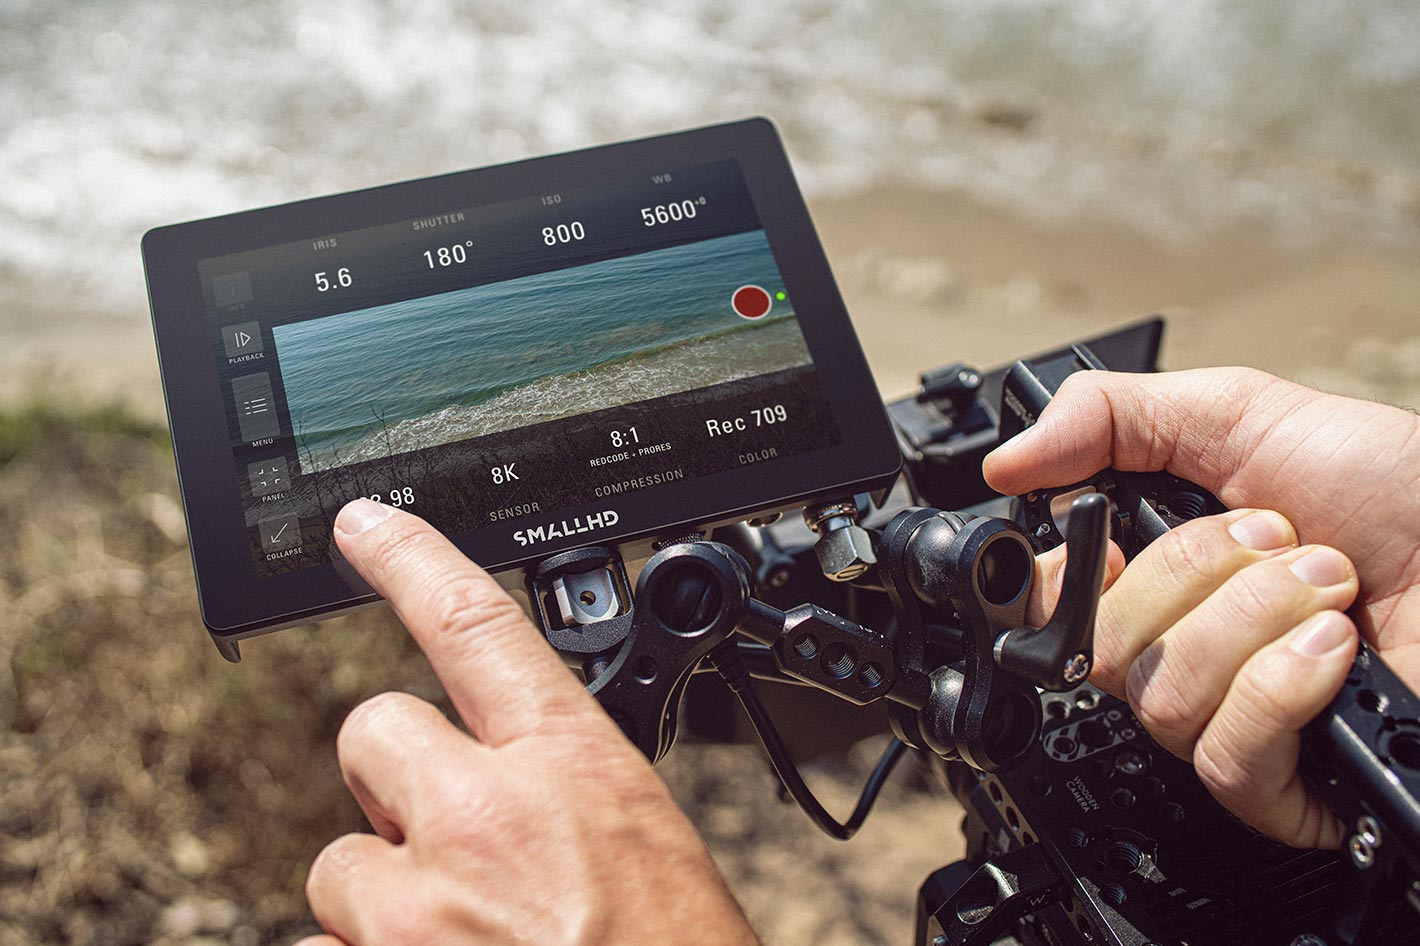 SmallHD Indie 7: a smart monitor for small budgets 4